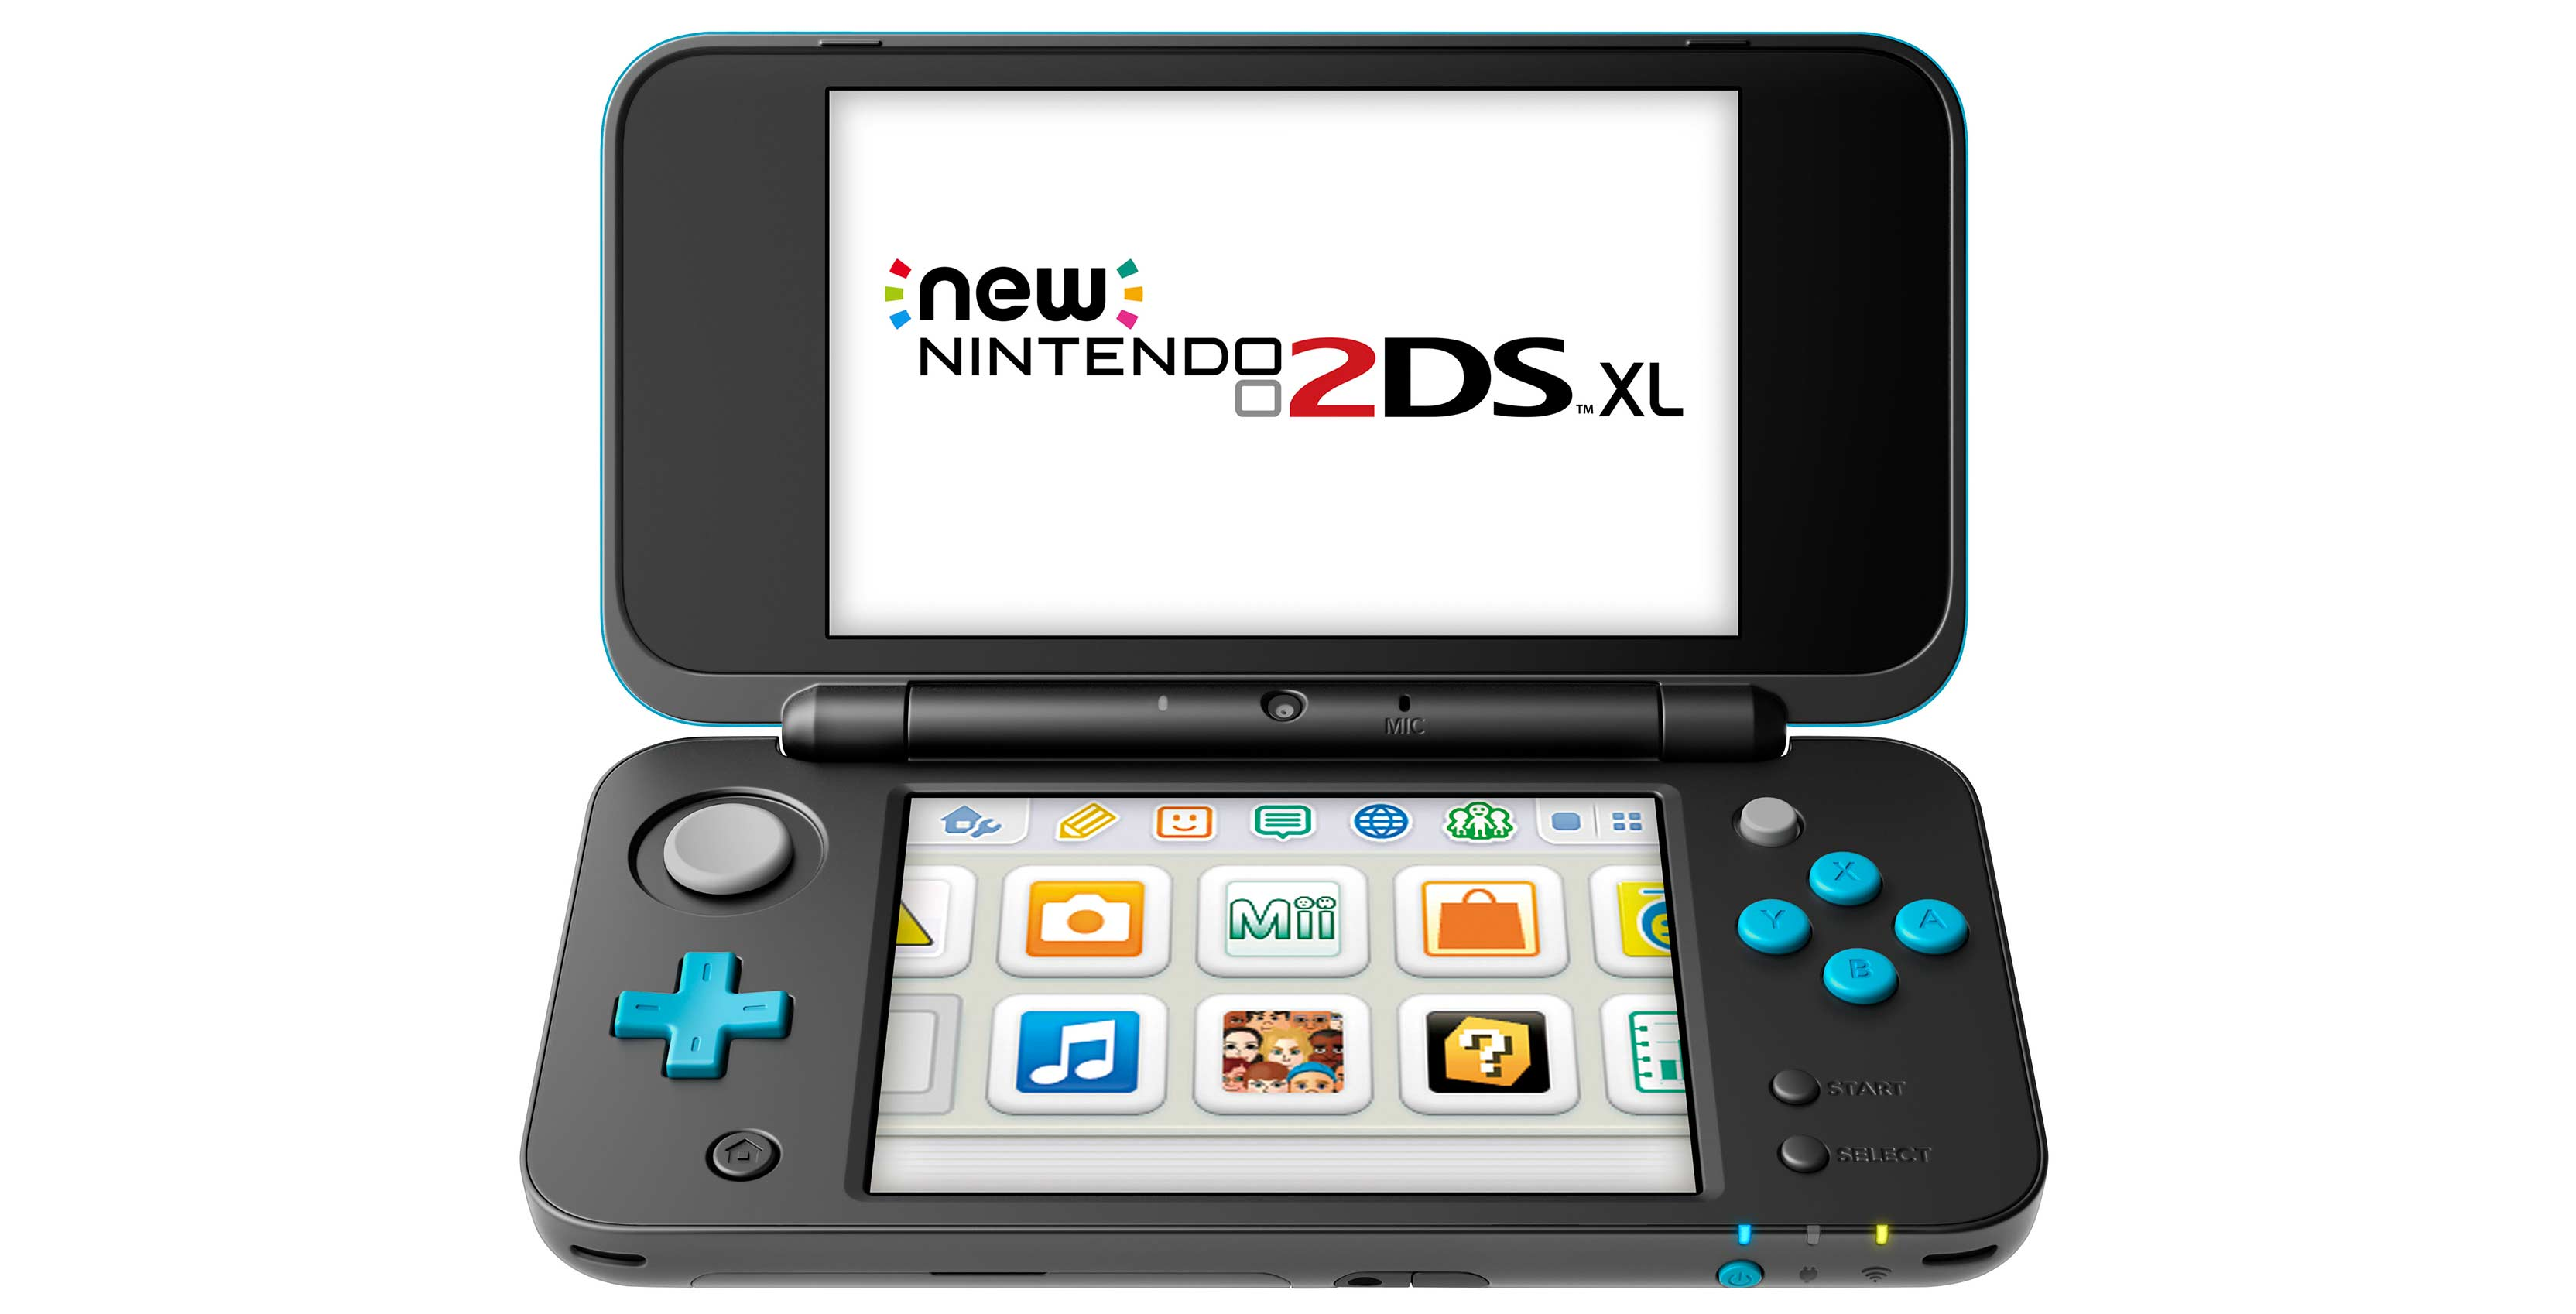 Nintendo announces 2DS XL and reveals the handheld's July 28 release